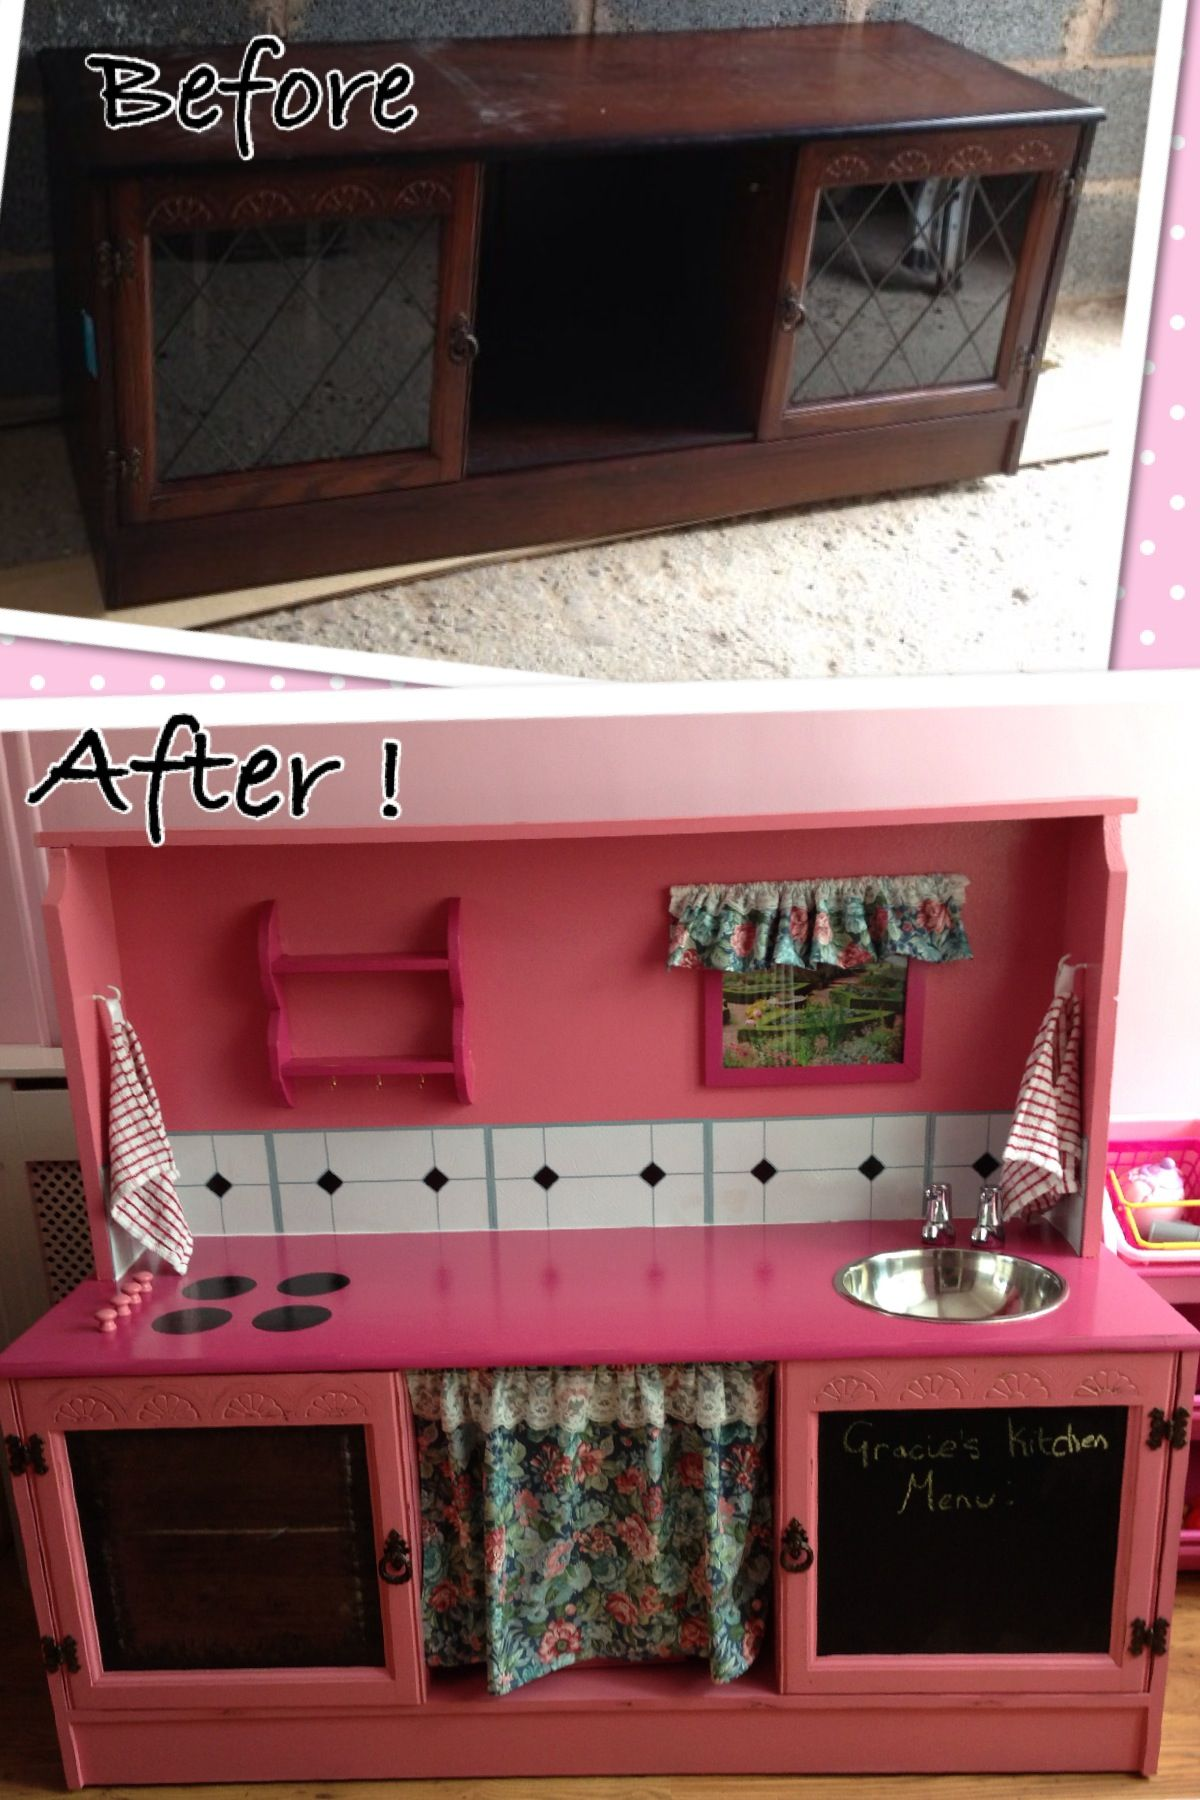 Upcycled an old tv unit display, into a children's play kitchen! My on kitchen ideas decorating, kitchen island ideas, kitchen lighting ideas, kitchen ideas paint, kitchen ideas modern, kitchen island designs, beautiful kitchens on a budget, kitchen countertops on a budget, kitchen design ideas, kitchen ideas for 2014, kitchen cabinets, kitchen storage ideas, updating kitchen on a budget, kitchen ideas product, kitchen ideas color, kitchen countertop ideas, kitchen remodel, kitchen makeovers on a budget, home improvement on a budget, ikea kitchen on a budget,